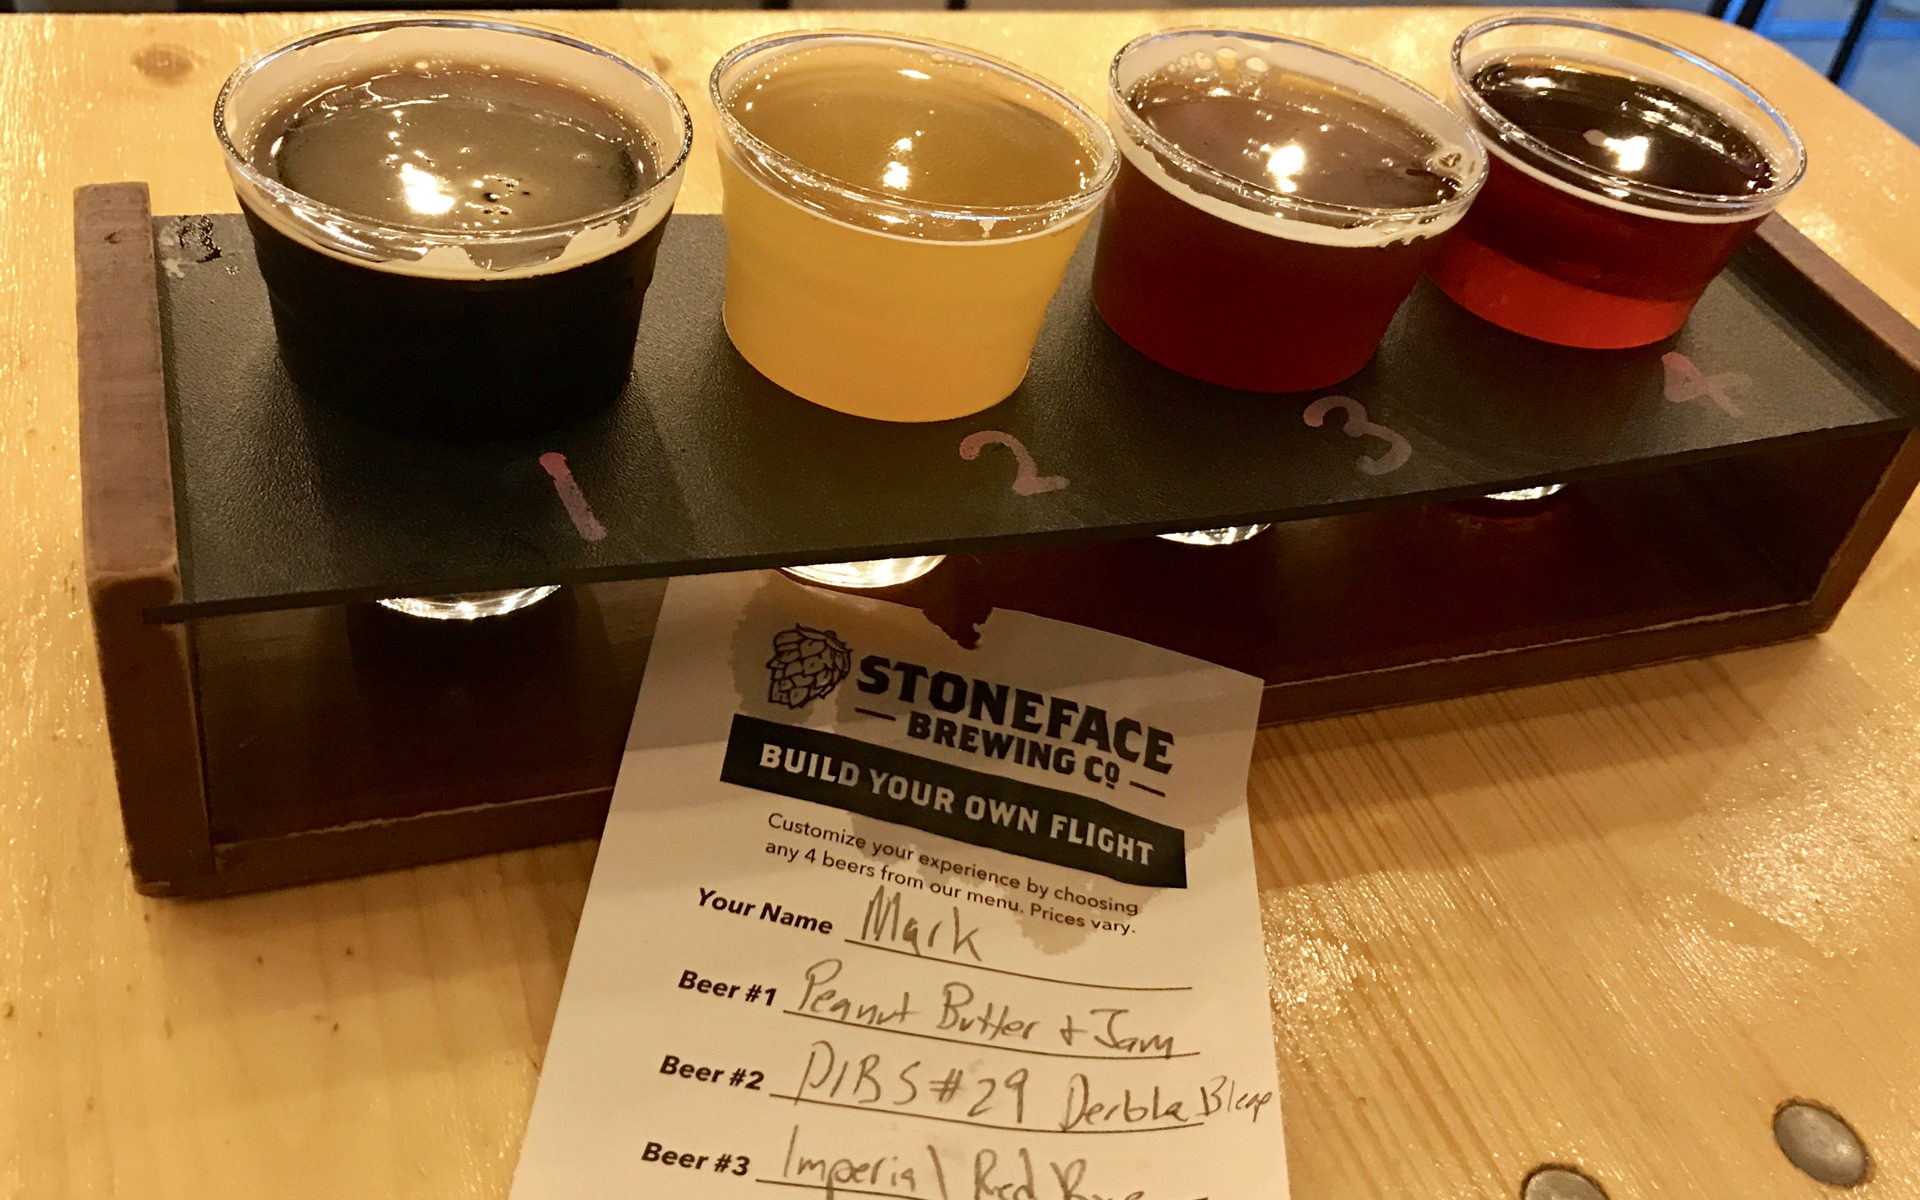 A flight of four beers with a handwritten ticket listing which beer is which.